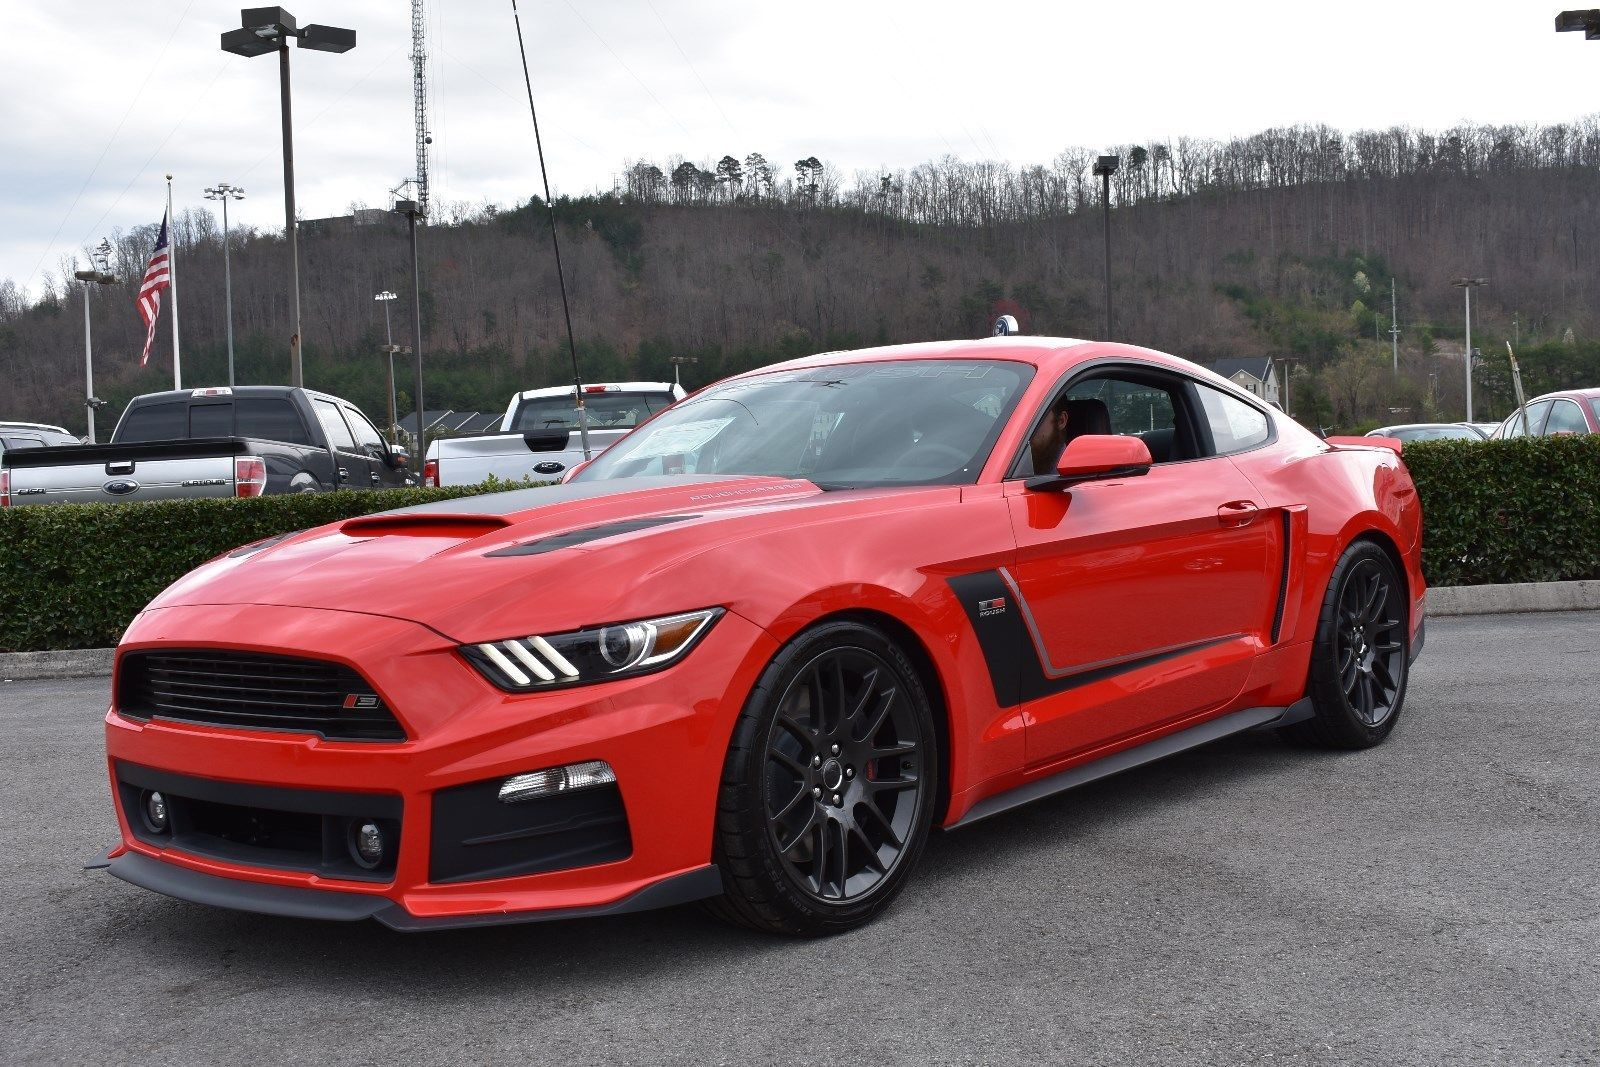 Ebay 2017 ford mustang roush stage 3 ford mustang 2017 roush stage 3 loaded with the toys low reserve price set a fordmustang ford